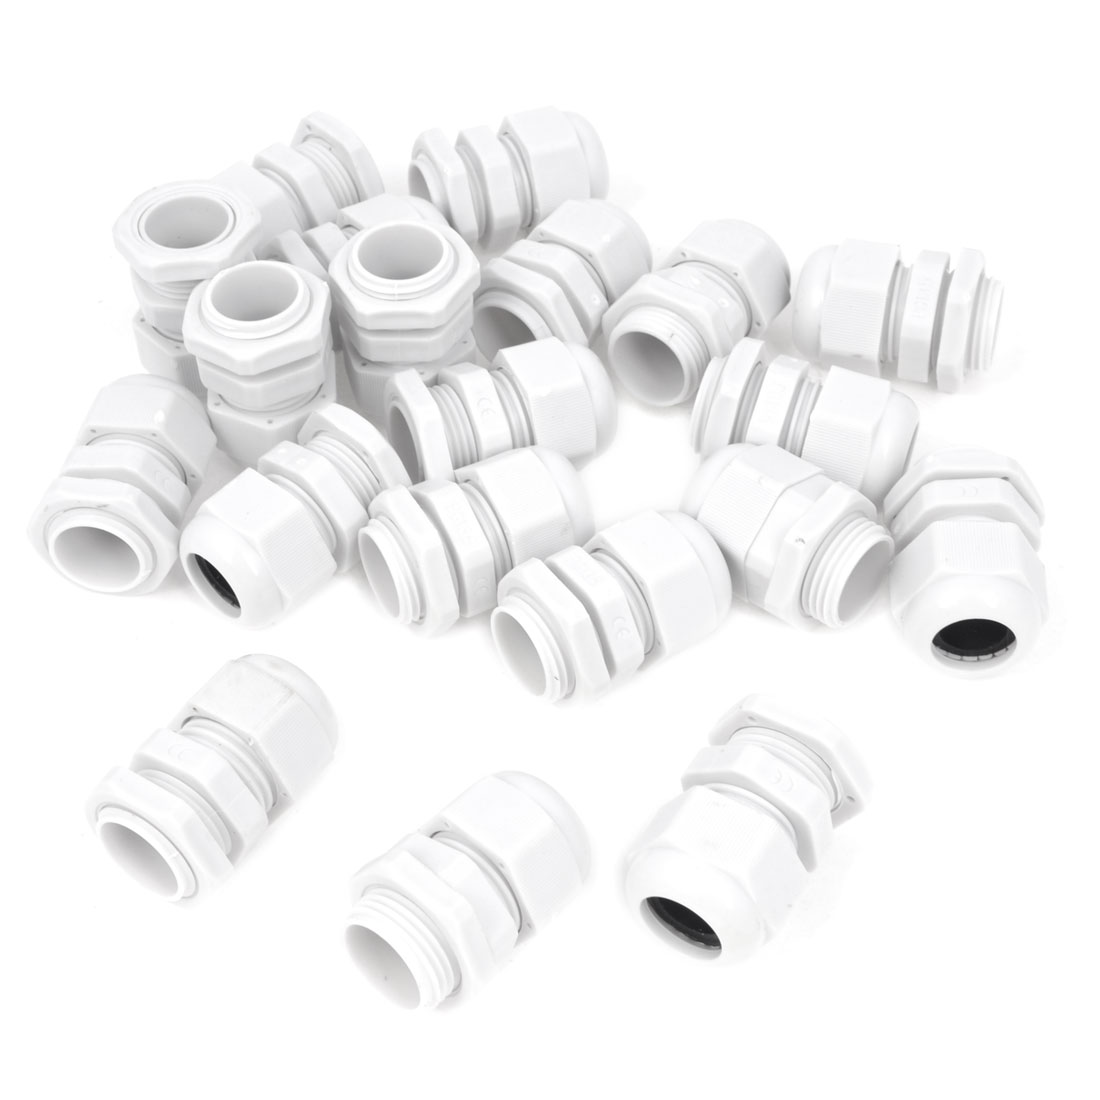 20 Pcs PG13.5 White Plastic 6mm to 12mm Dia Waterproof Cable Gland Fixing Connector